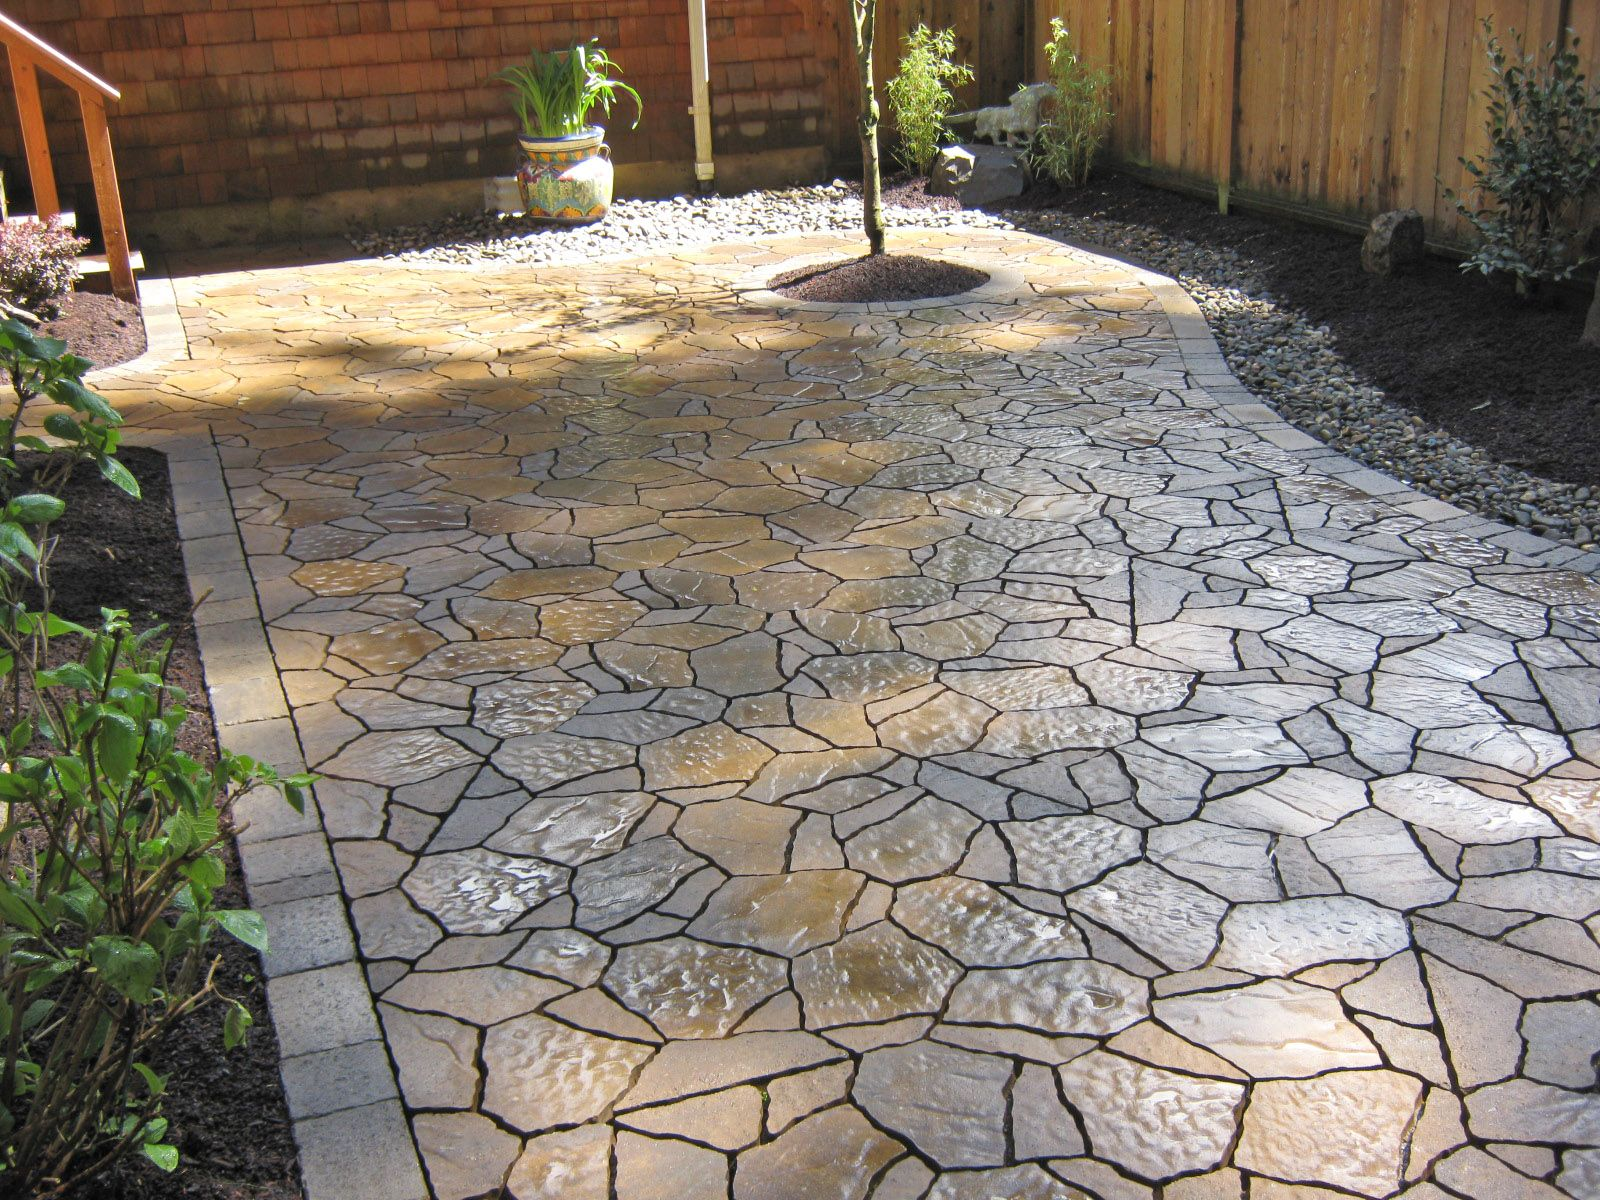 Stone patio ideas landscape archives dennis 39 7 dees Backyard landscaping ideas with stones